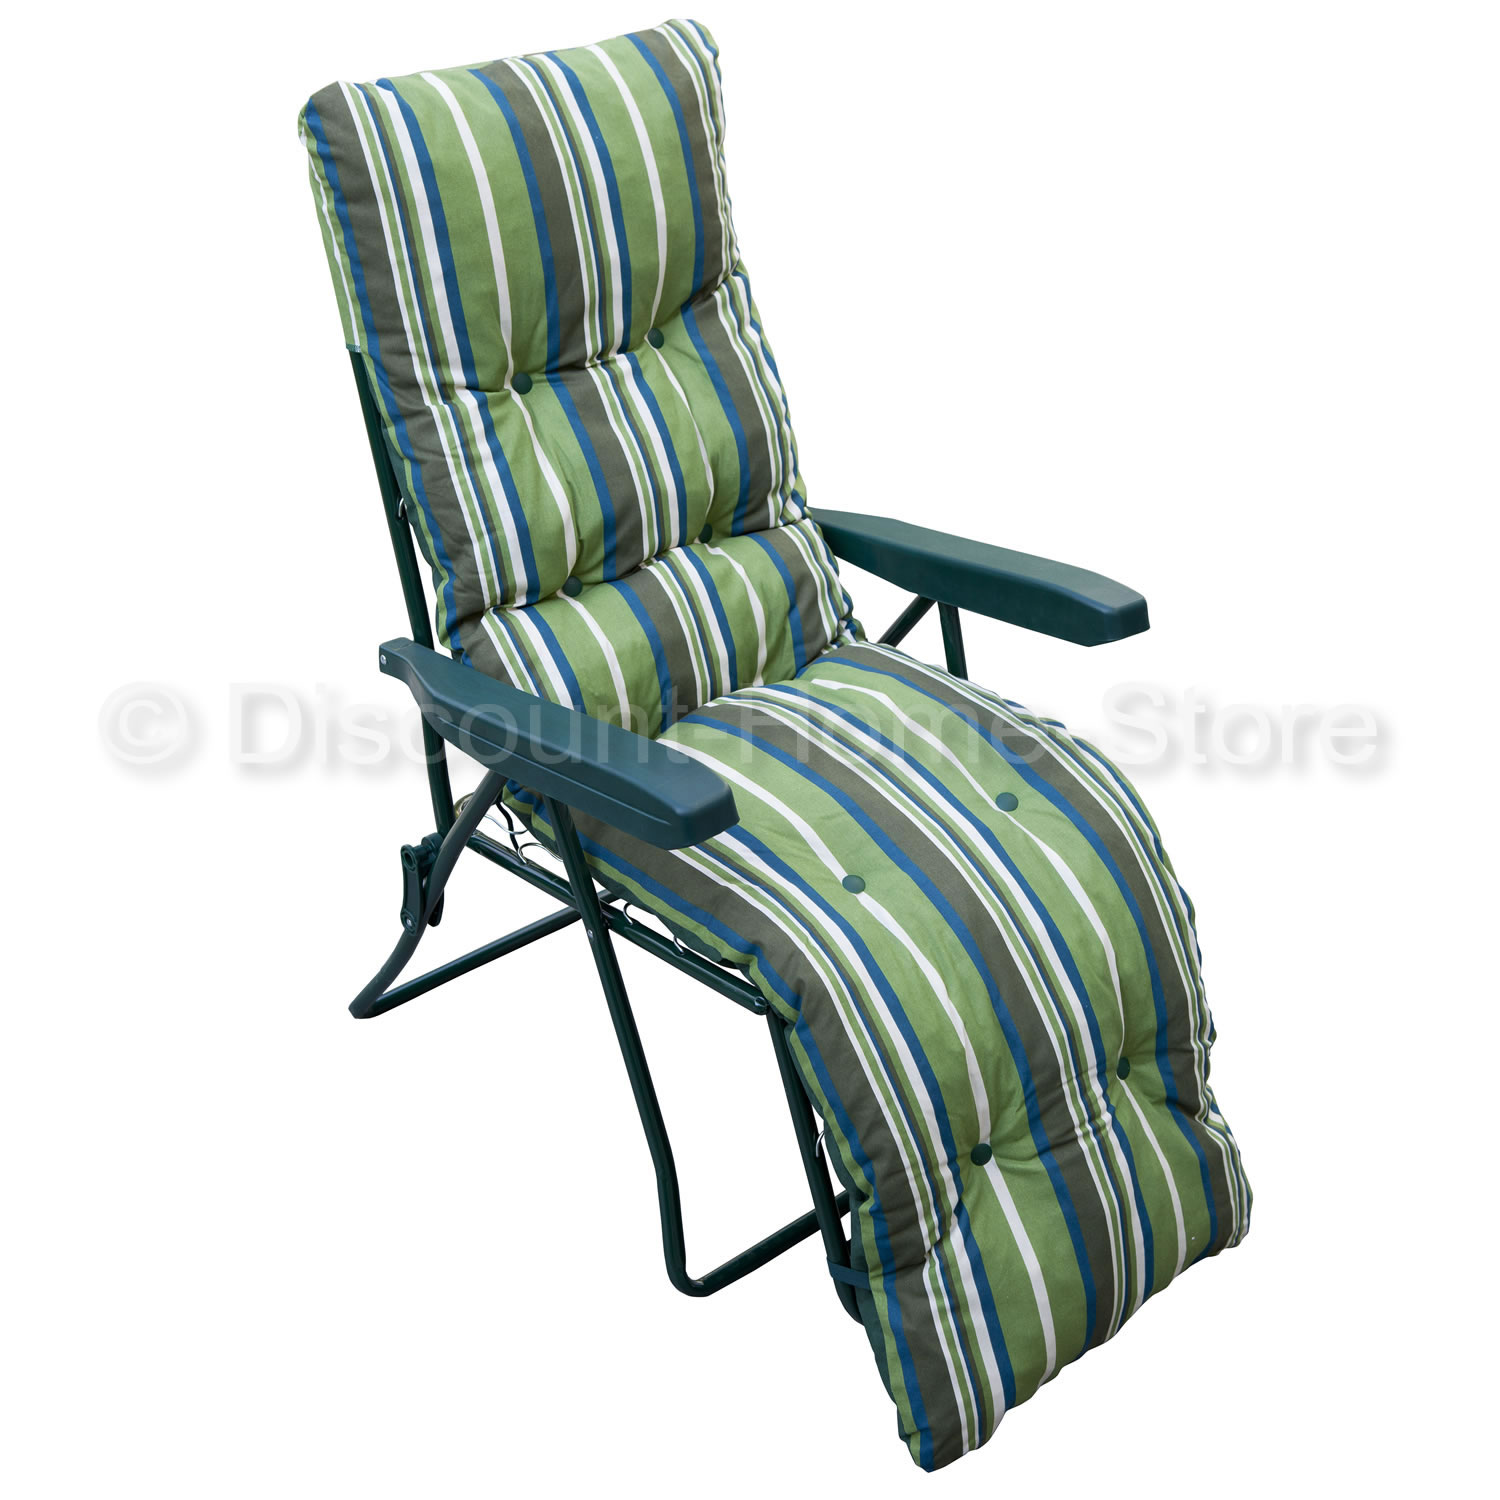 Garden Relaxer Reclining Sun Lounger - Green Stripe Padded Outdoor Chair - Green enlarged preview